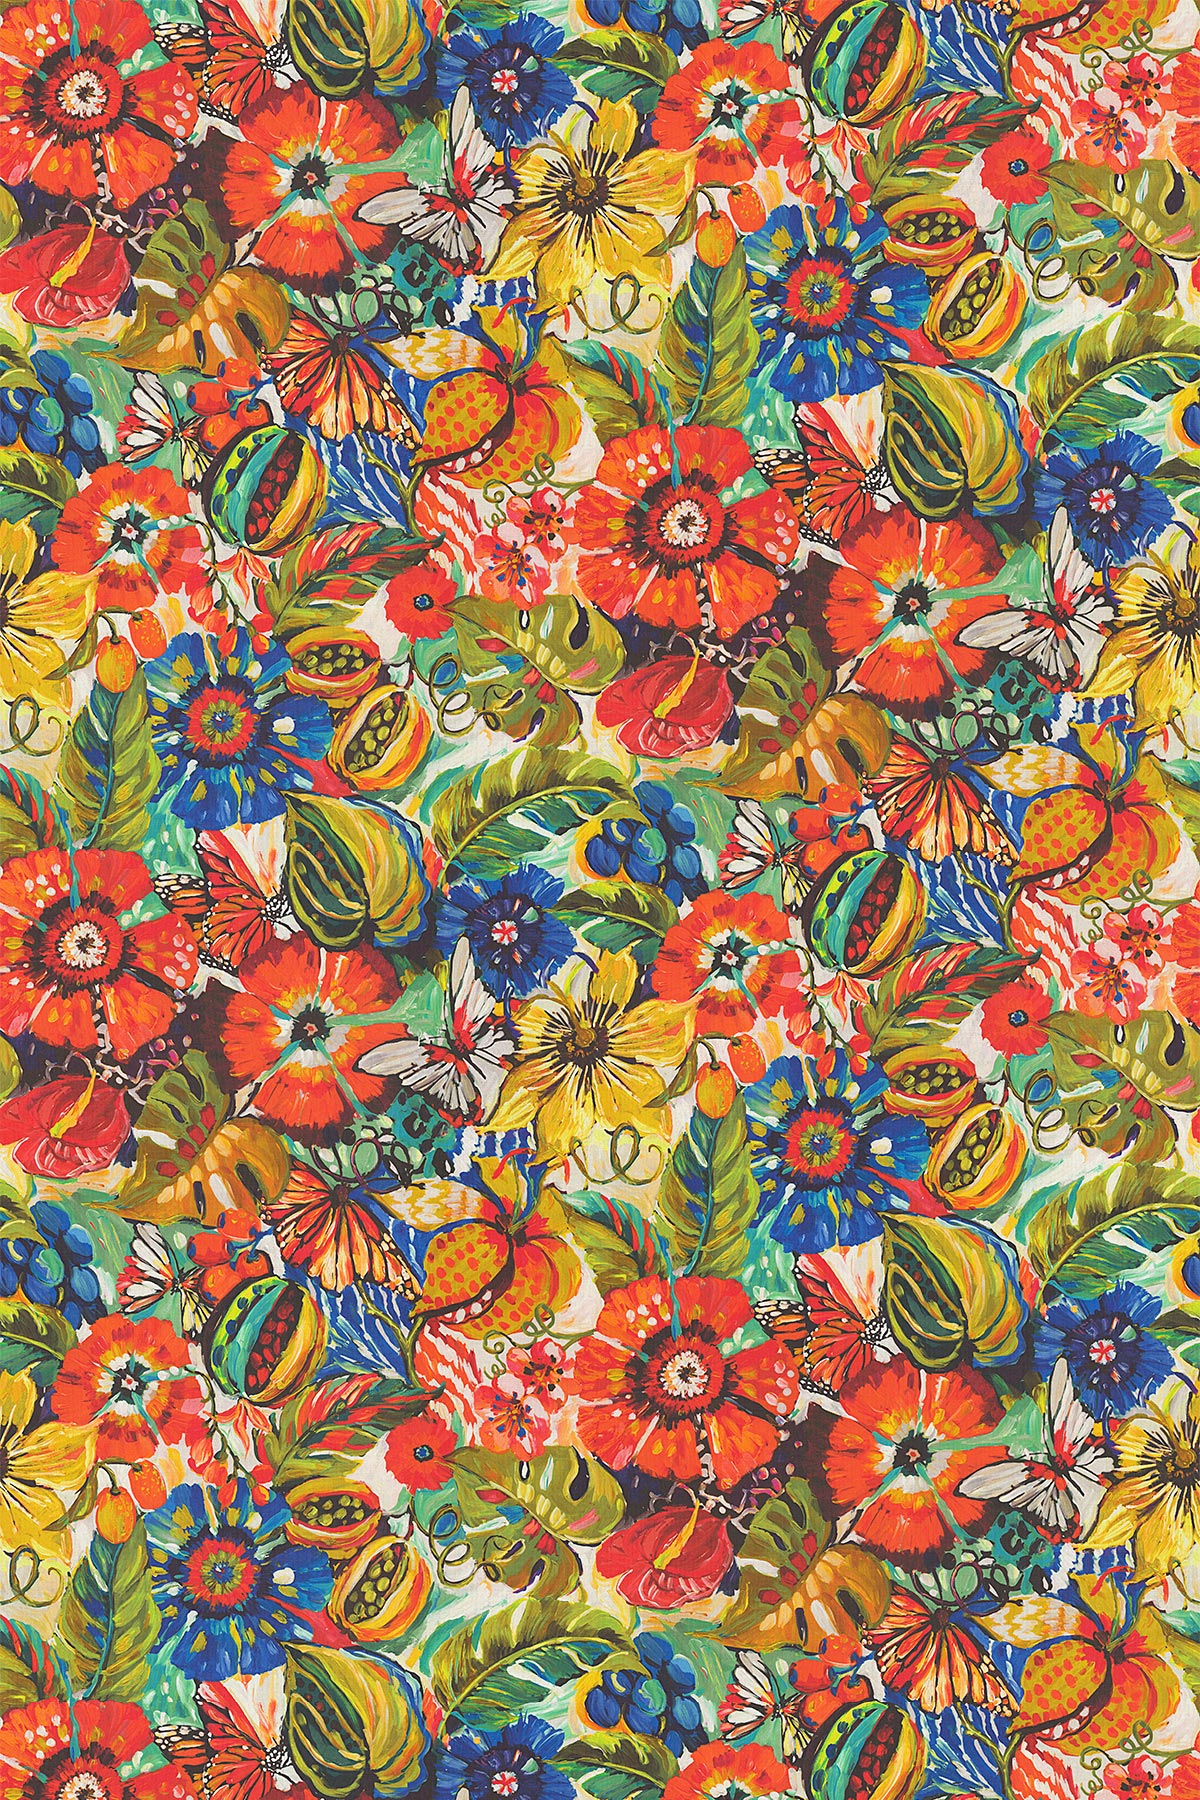 Tropical Garden Fabric - by Prestigious